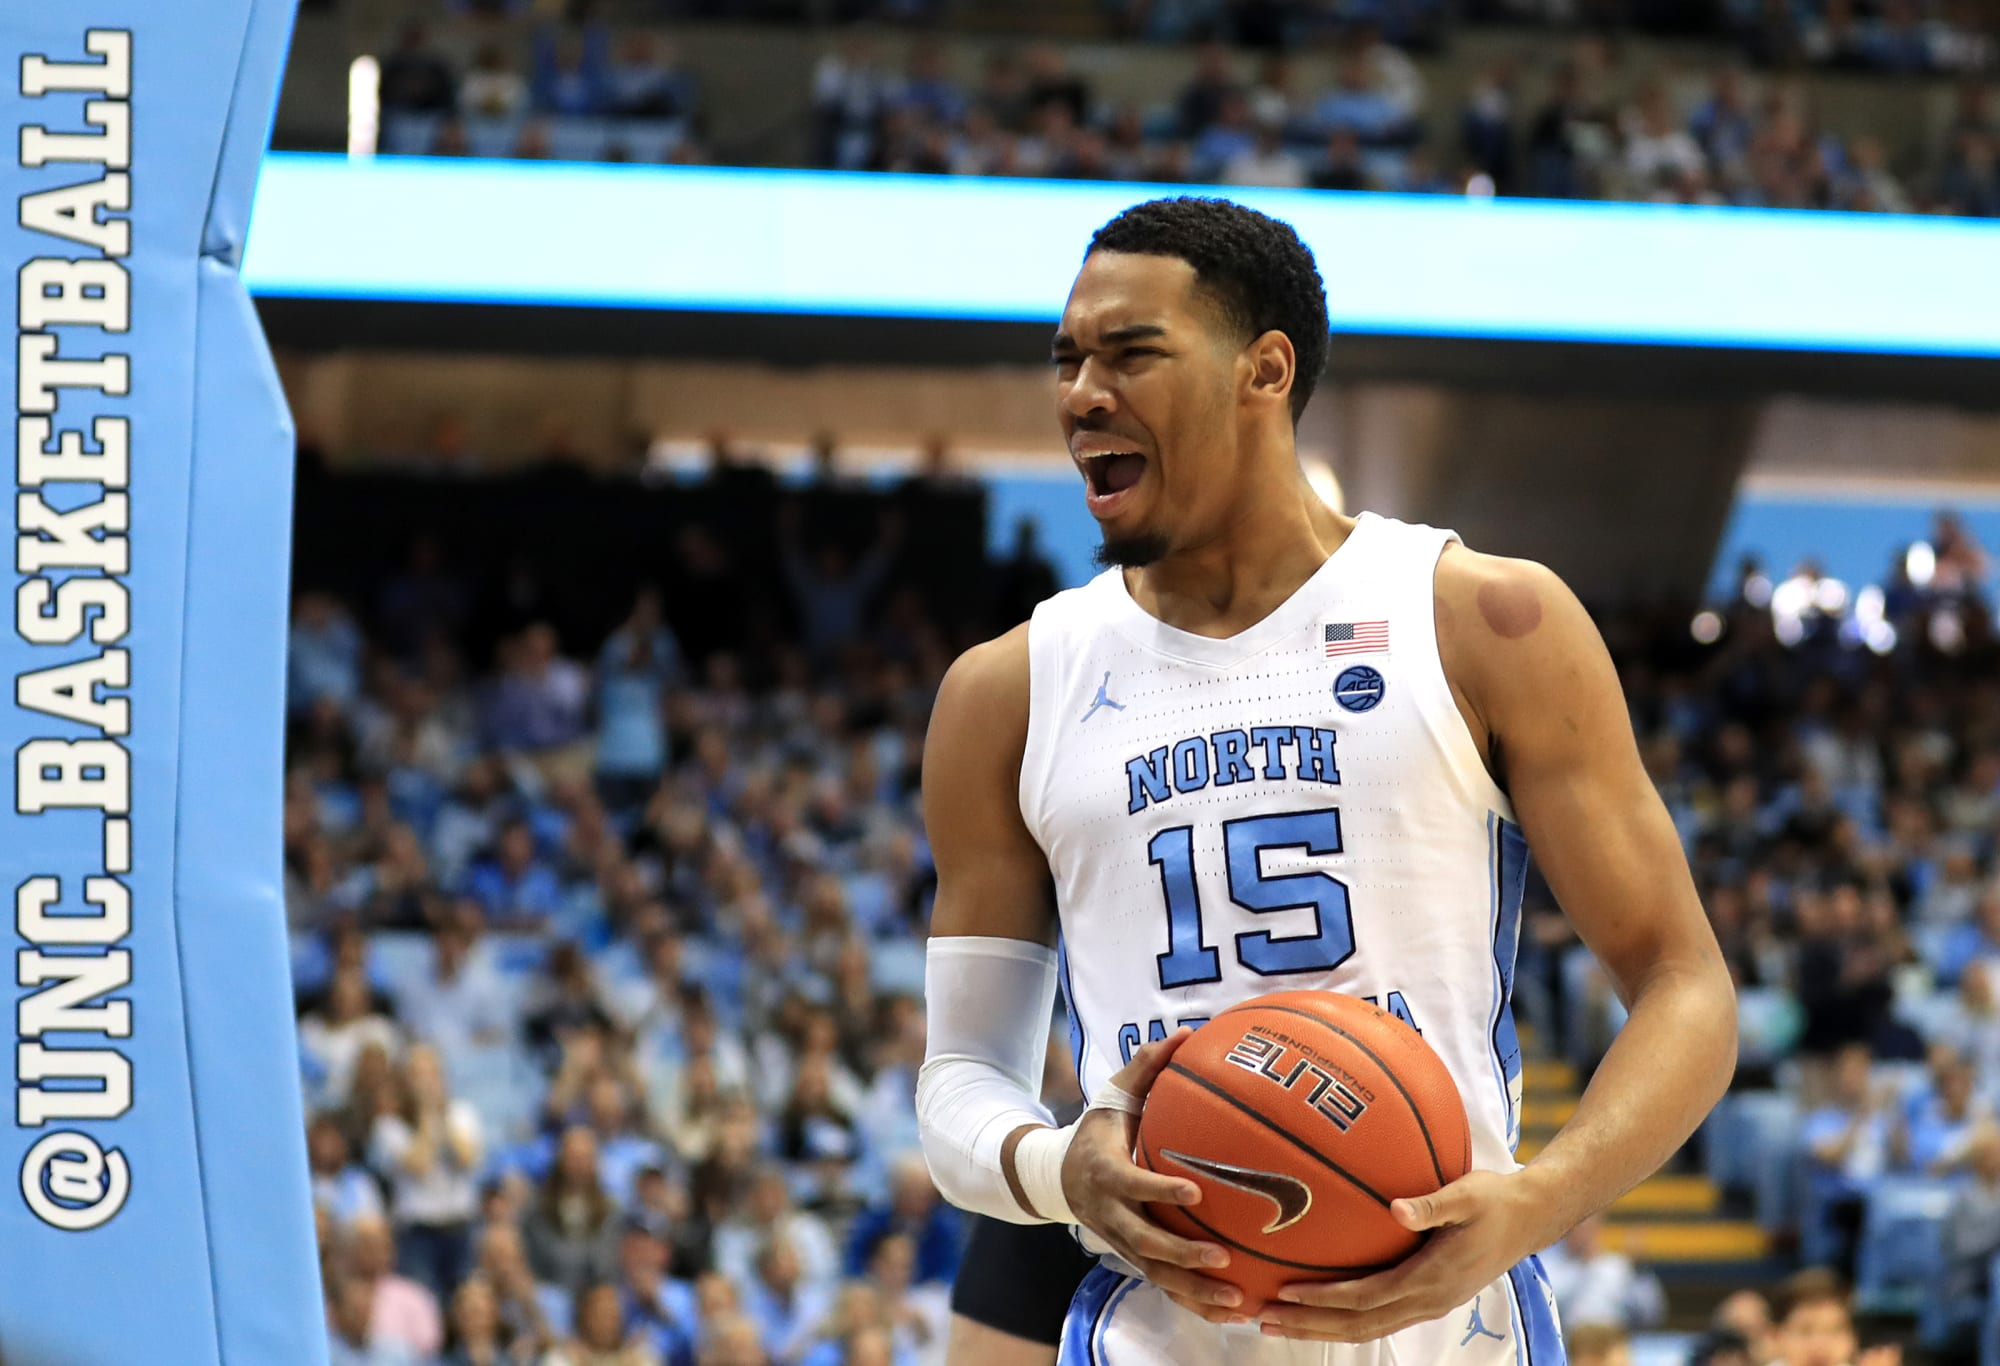 UNC Basketball: Where Tar Heels land in updated CBS Top 25 and 1